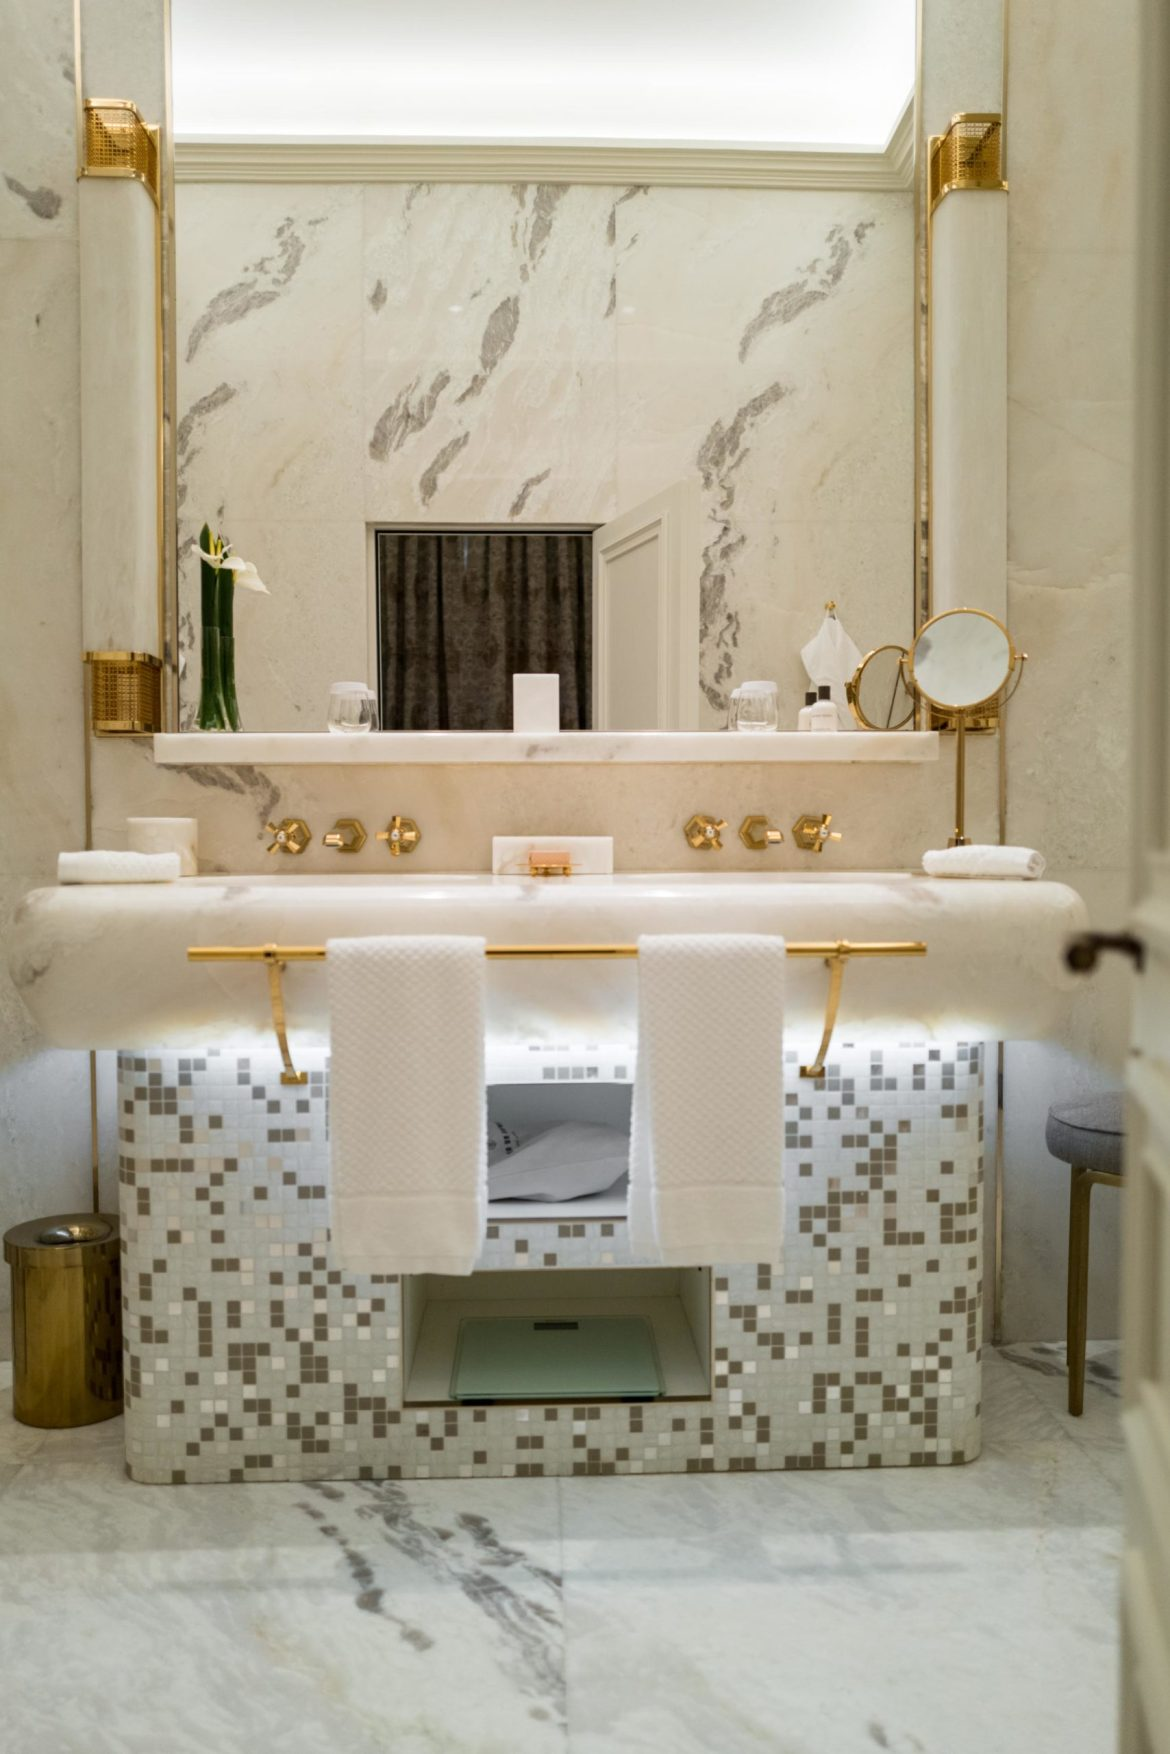 Hotel Eden in Rome's bathrooms are elegant and tall with gold and marble, The Taste Edit #hotel #rome #italy #bathroom